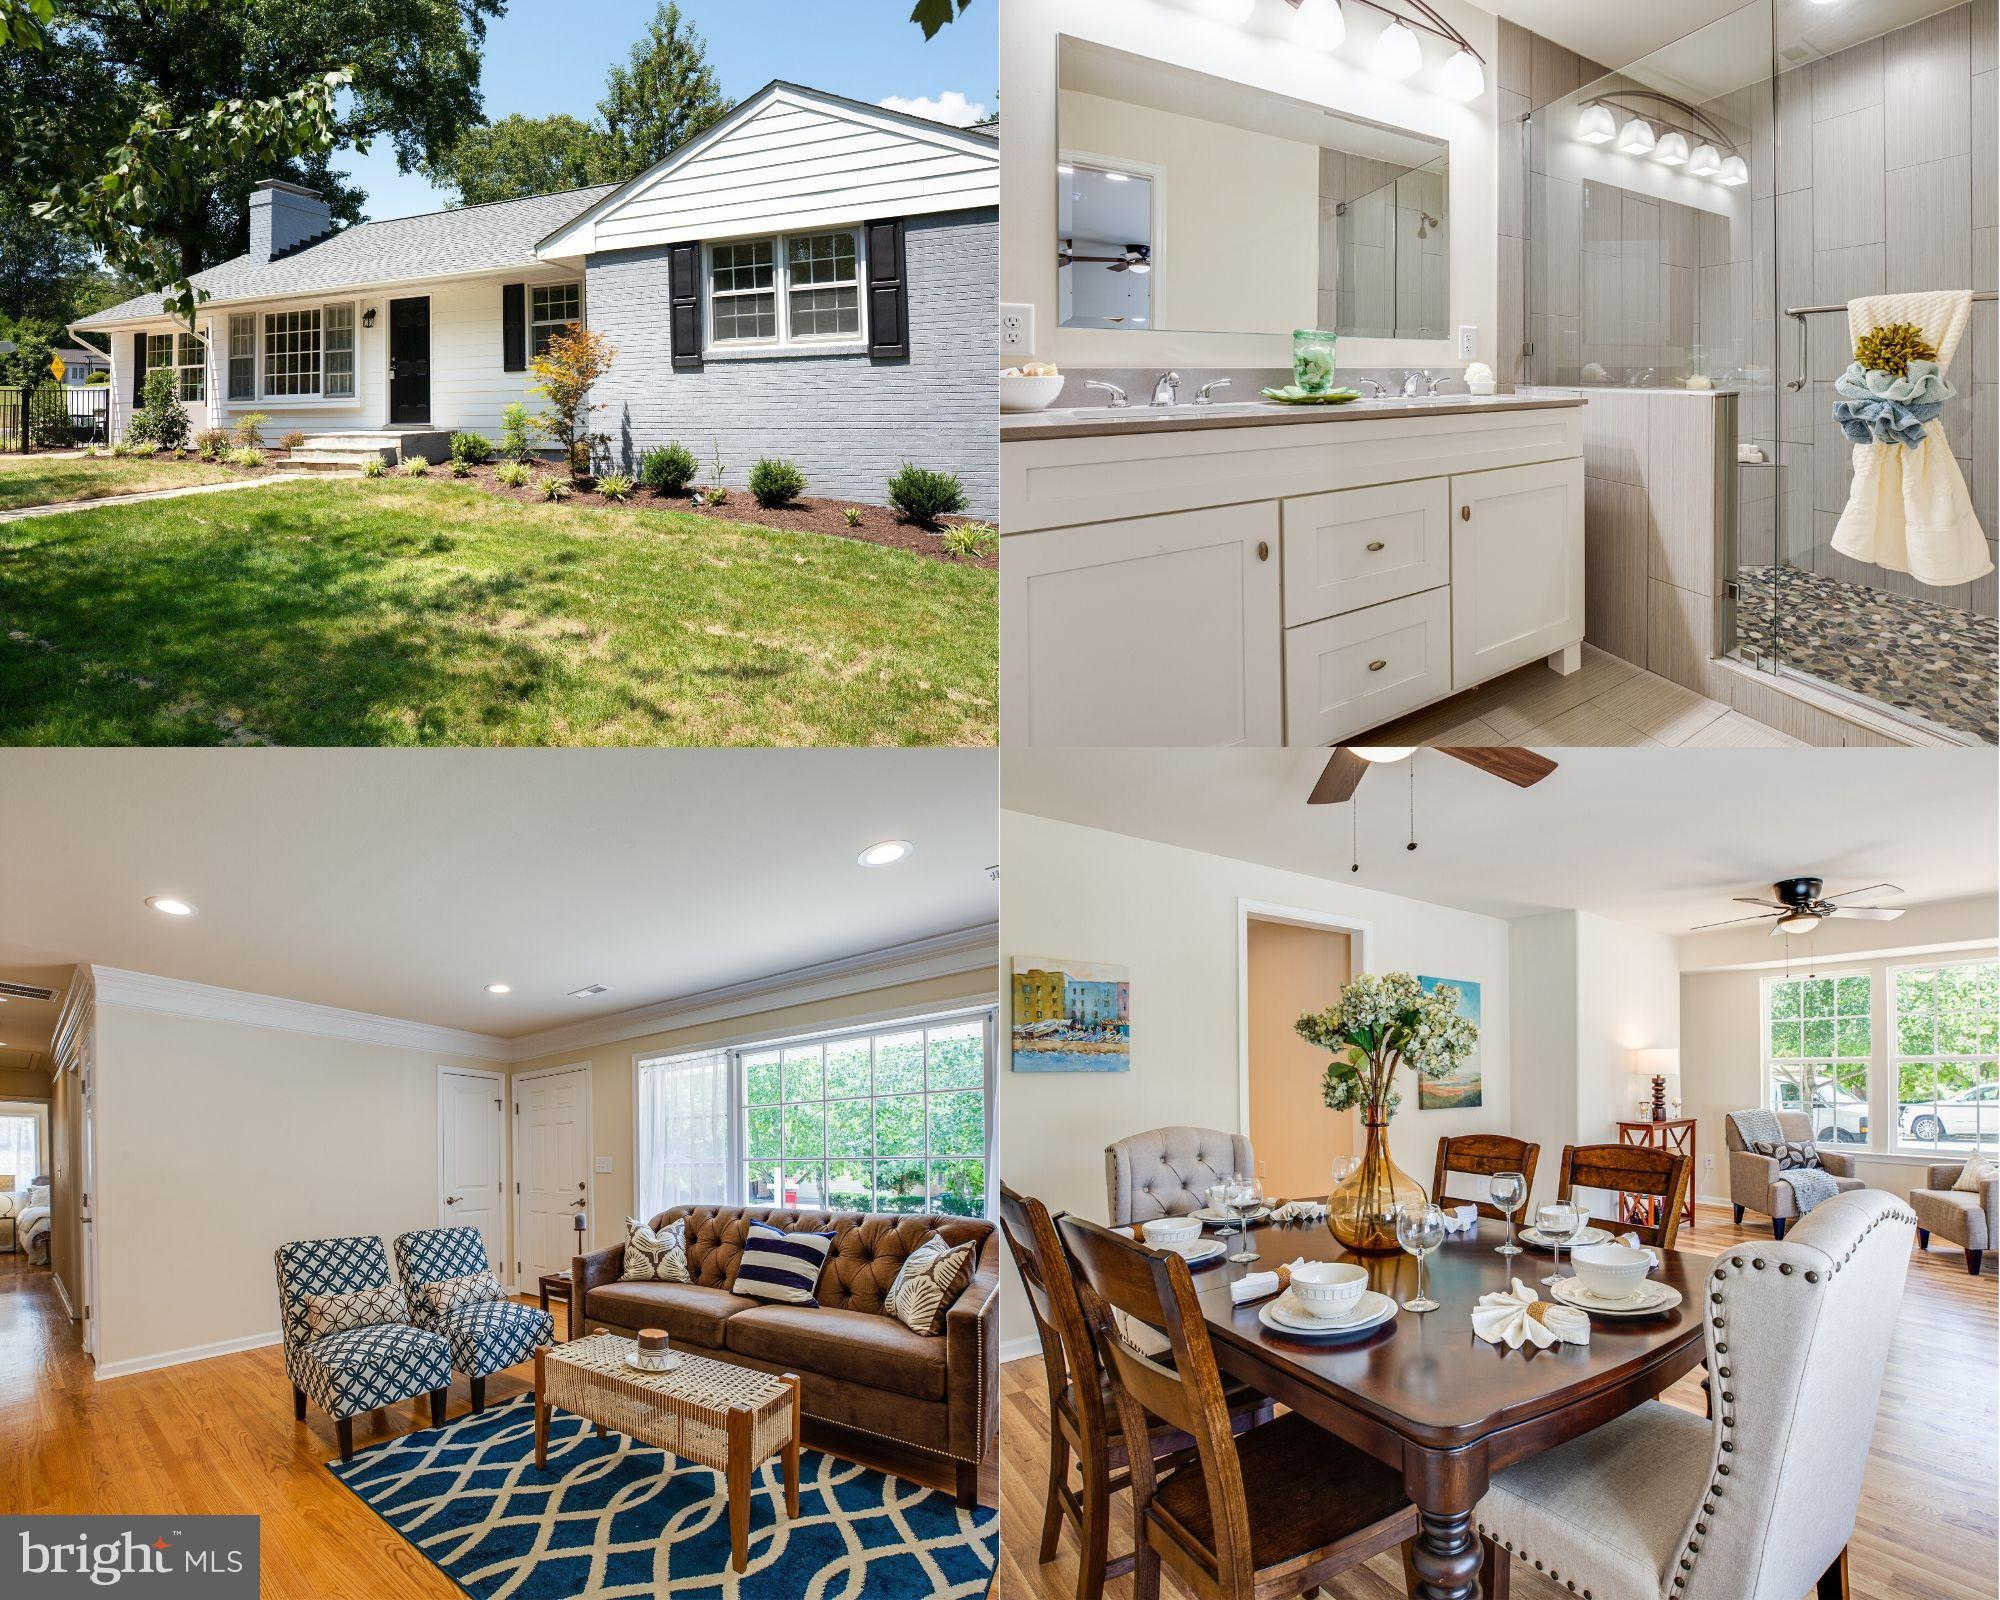 911 Madison Street, Fredericksburg, VA 22401 now has a new price of $499,000!